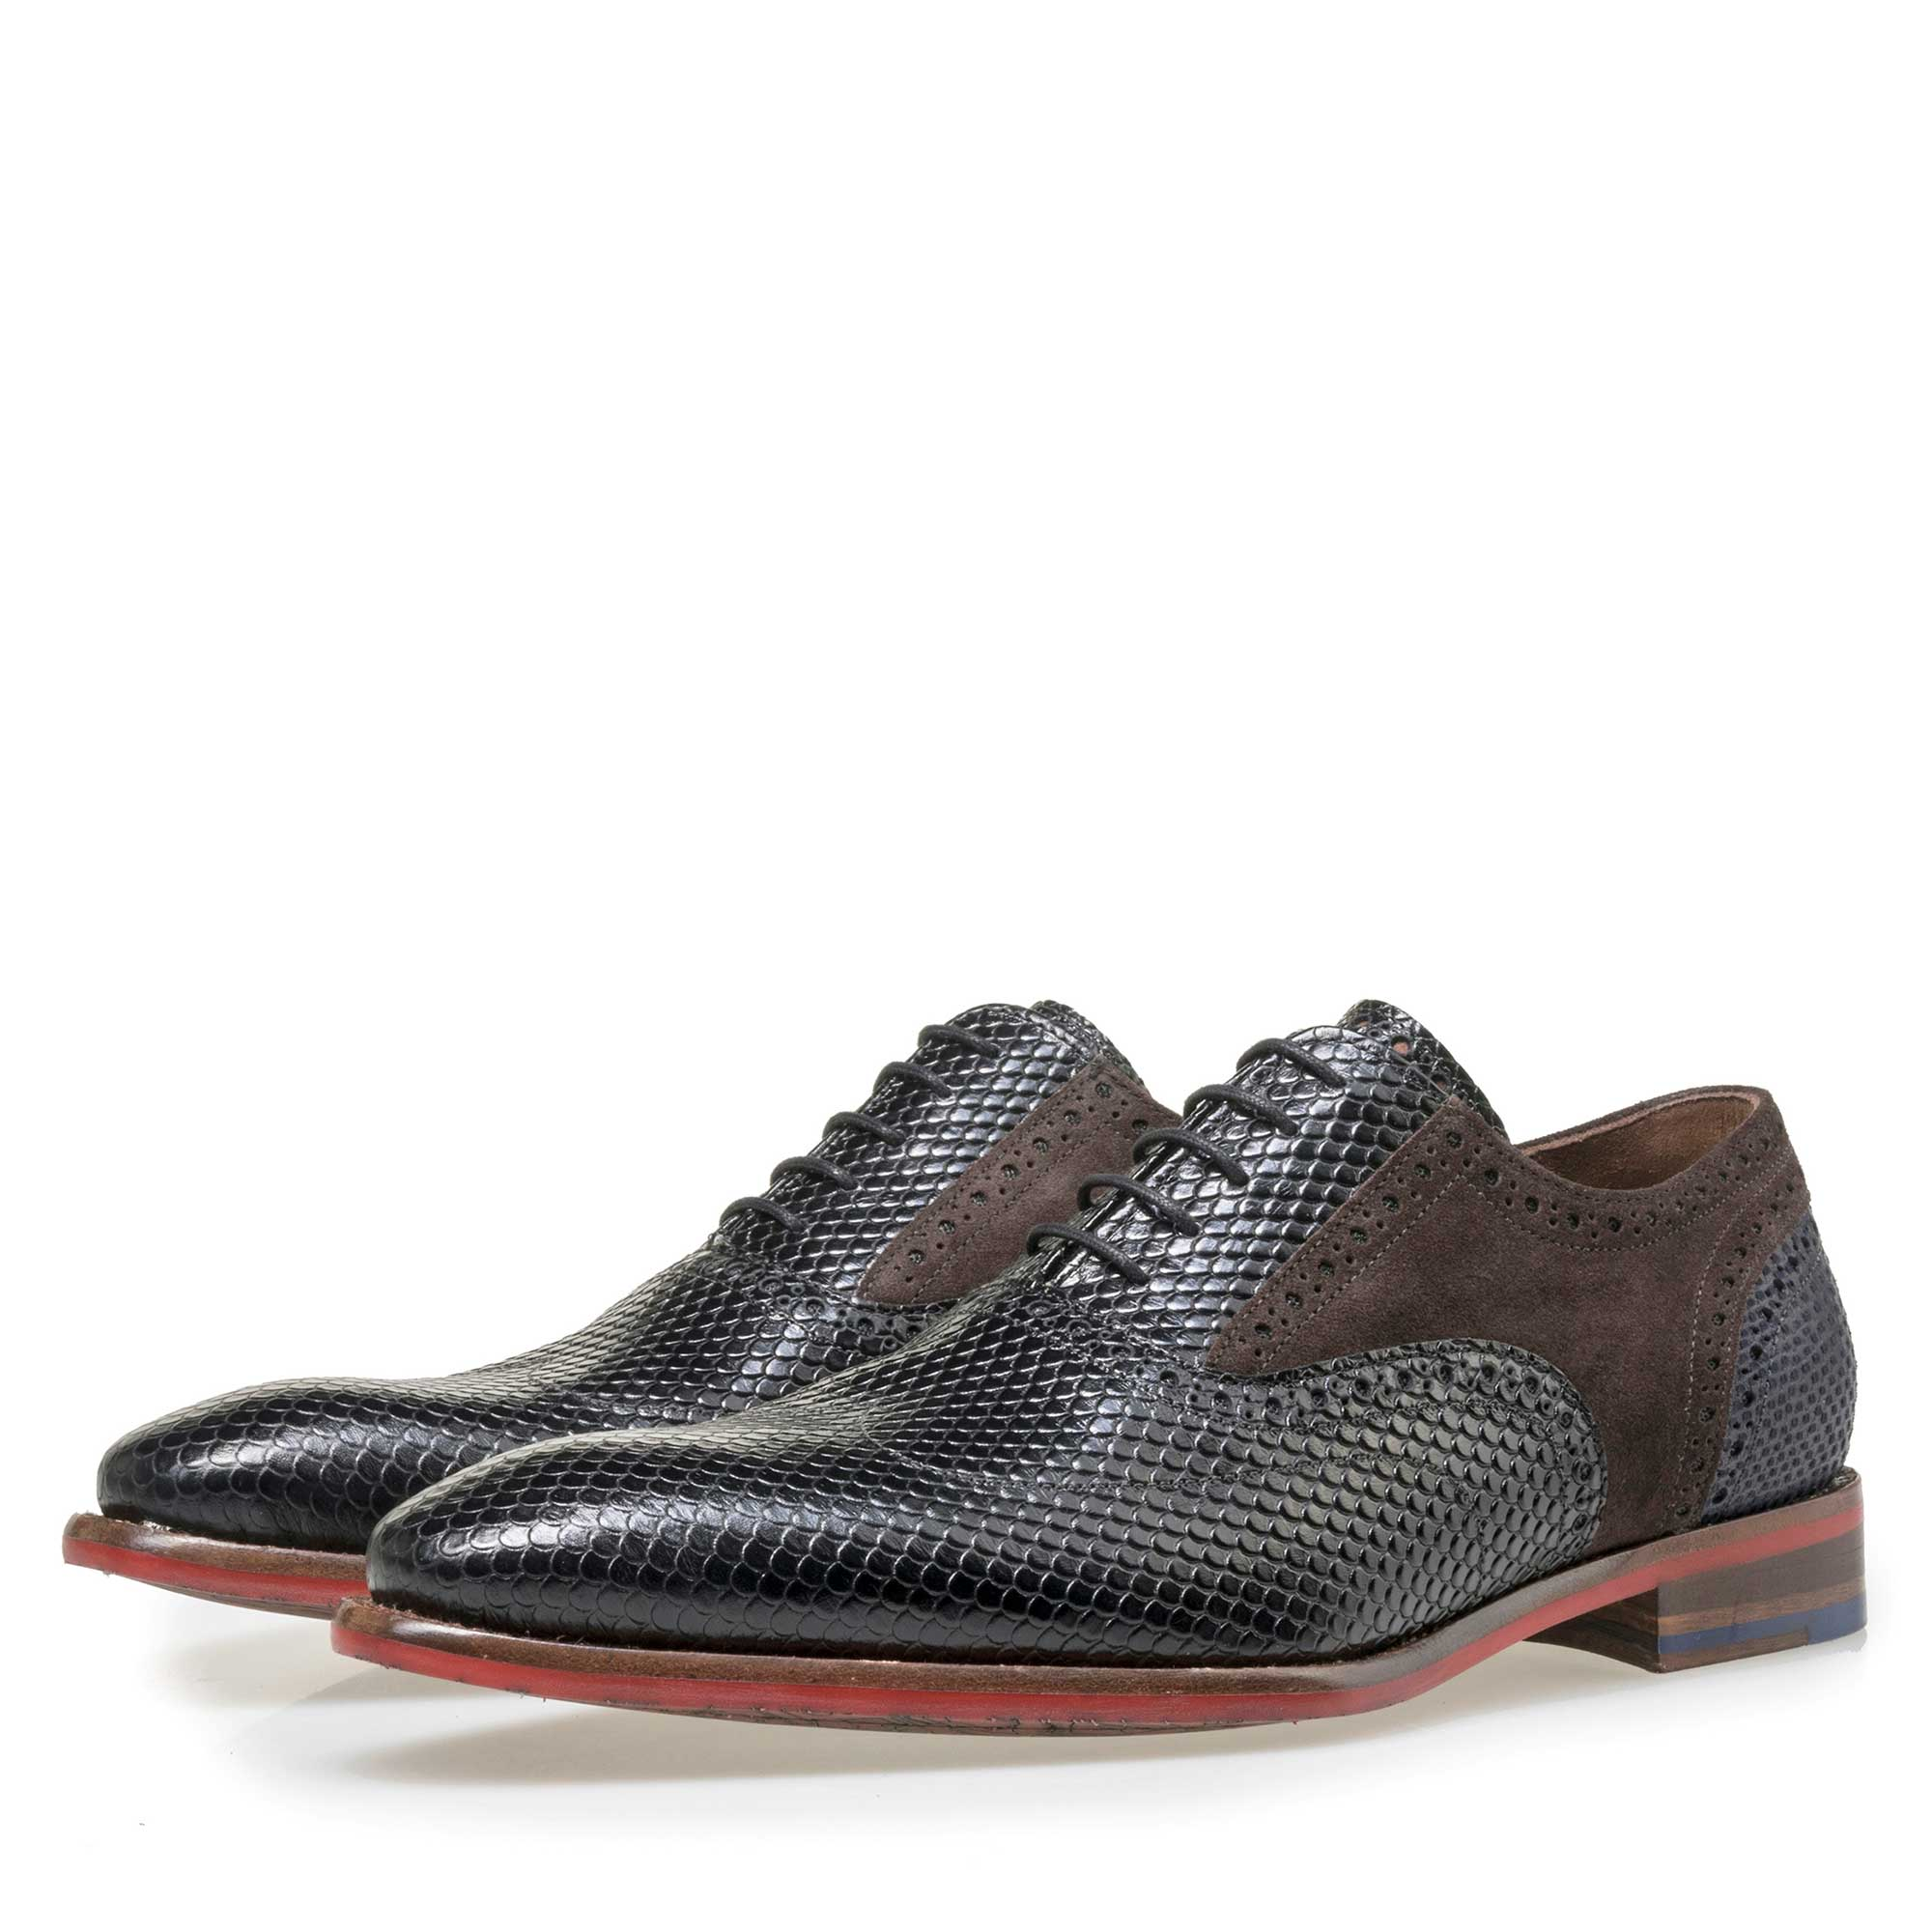 19104/04 - Floris van Bommel men's black leather lace shoe